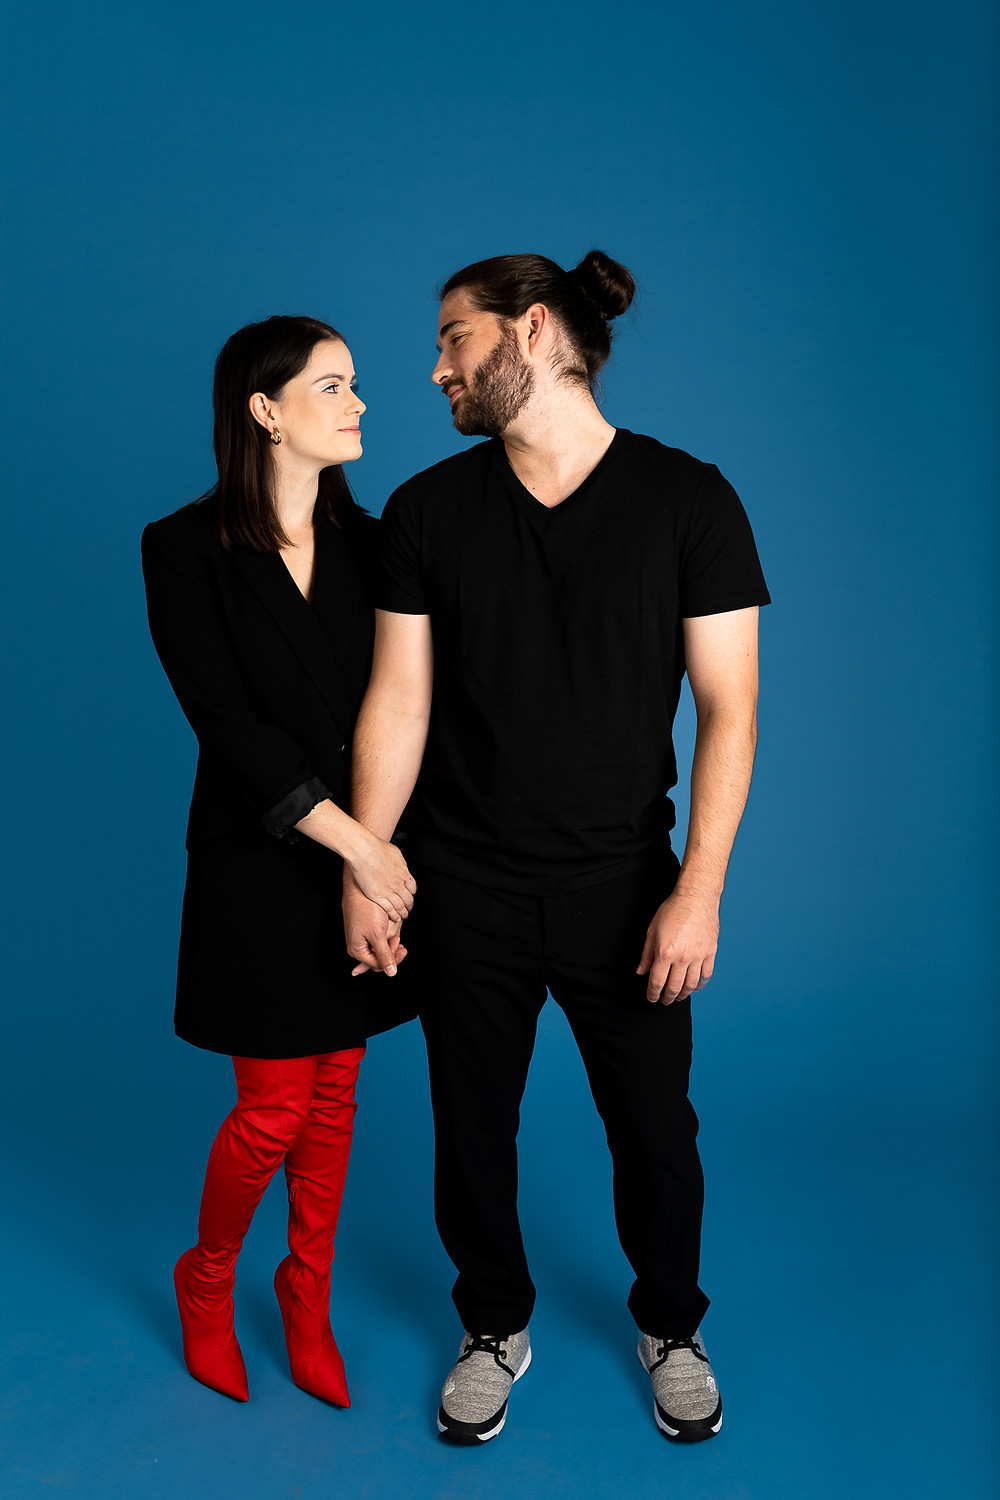 guy in all black and girl in black dress and red boots holding hands and looking at each other